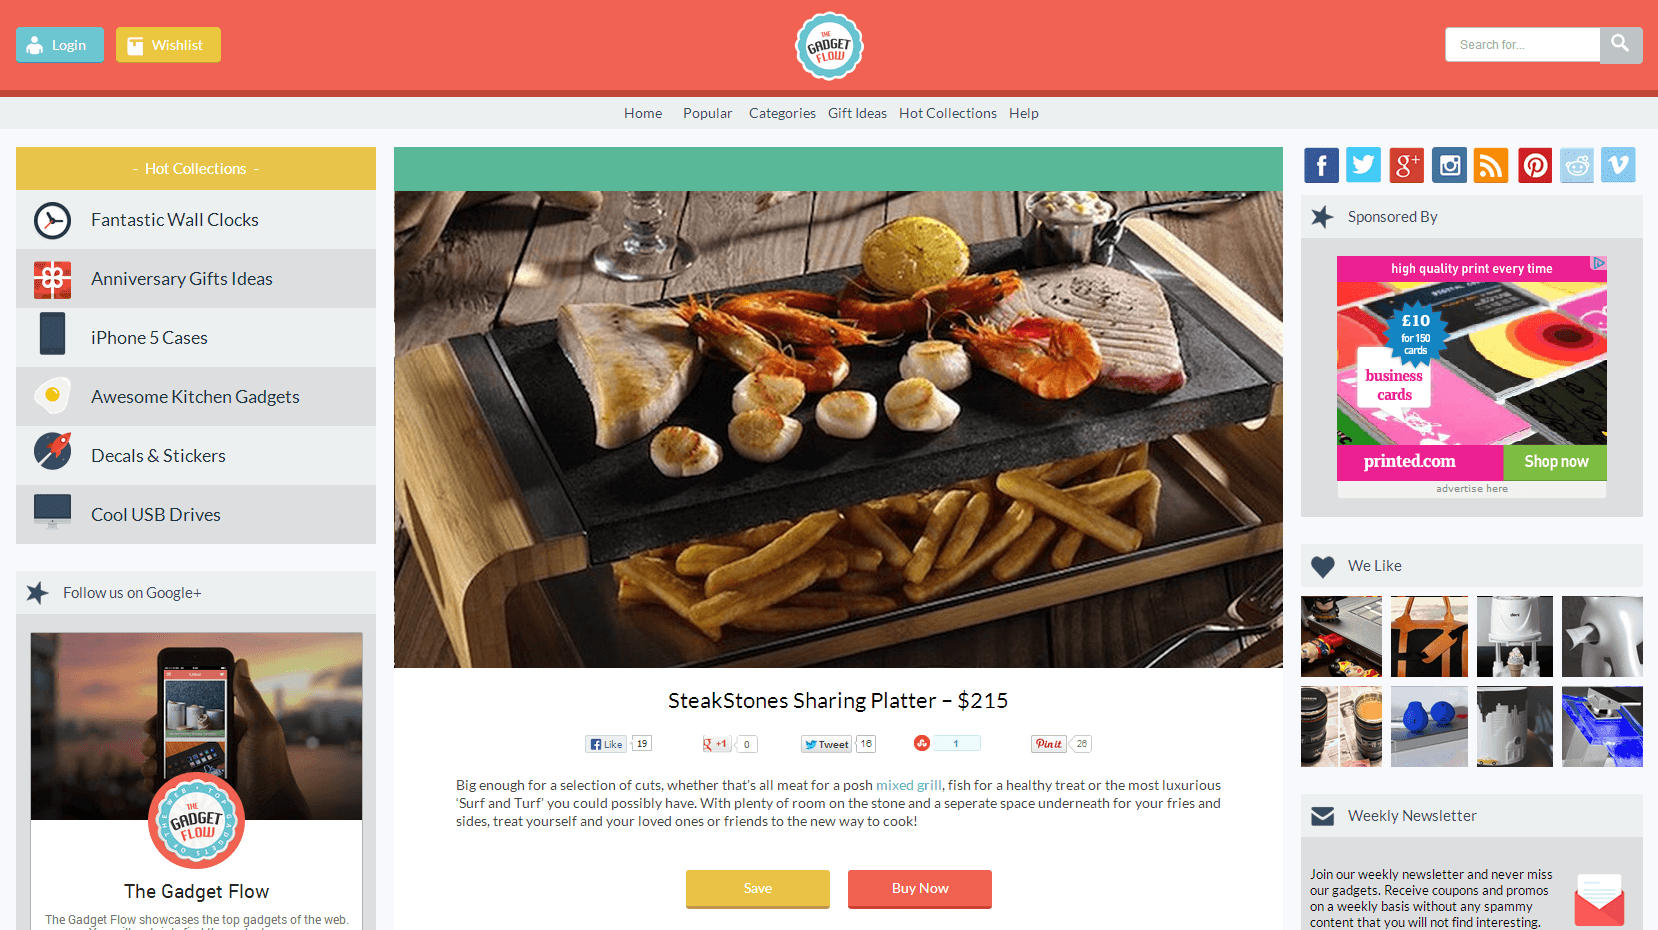 The SteakStones Sharing Platter showcased in The Gadget Flow